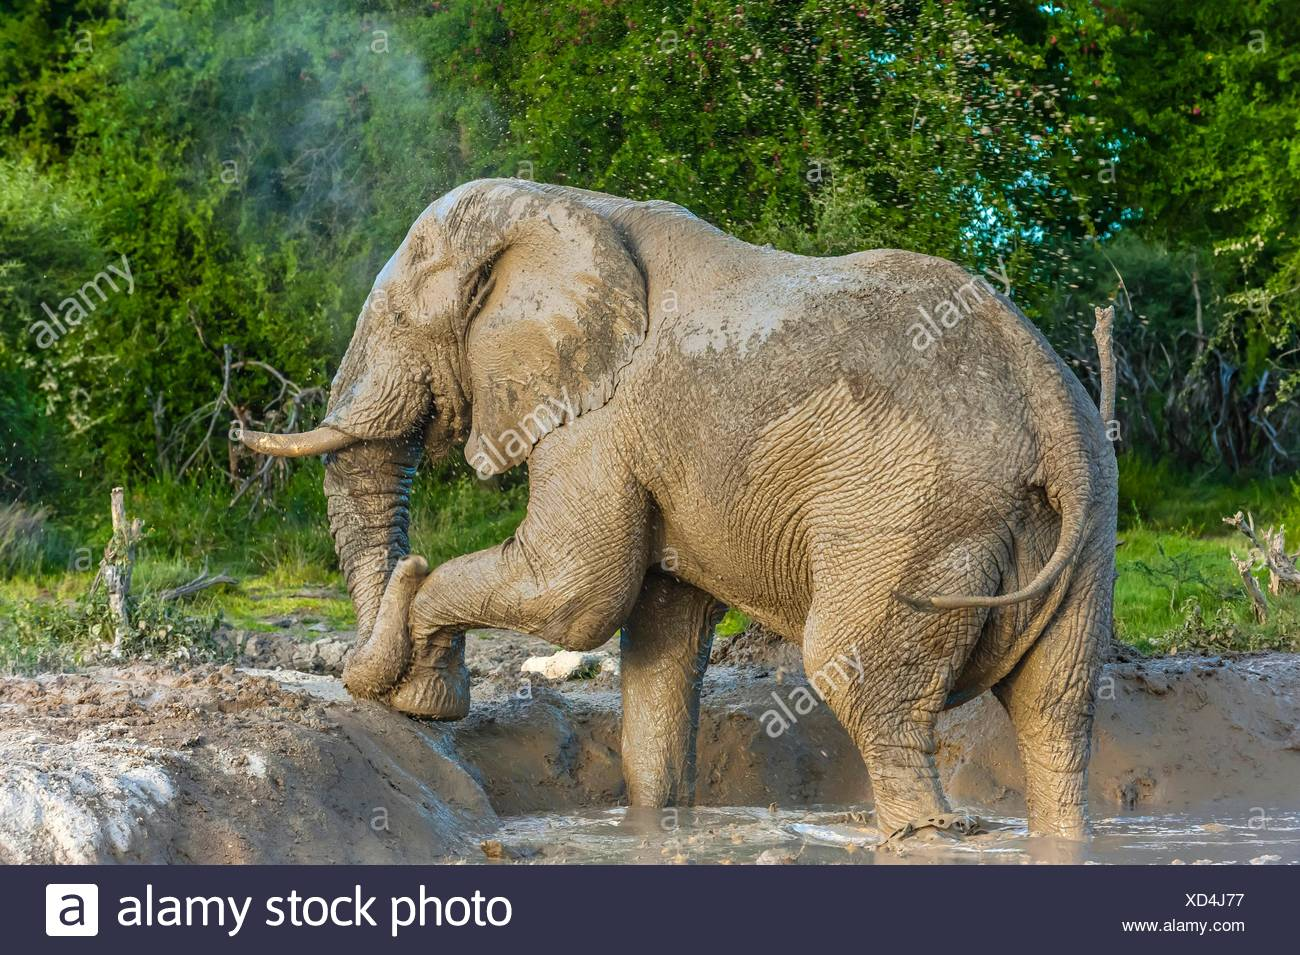 An elephant with one tusk (they often break them digging) after taking a mud bath to cool off, Nxai Pan National Park, Botswana. - Stock Image